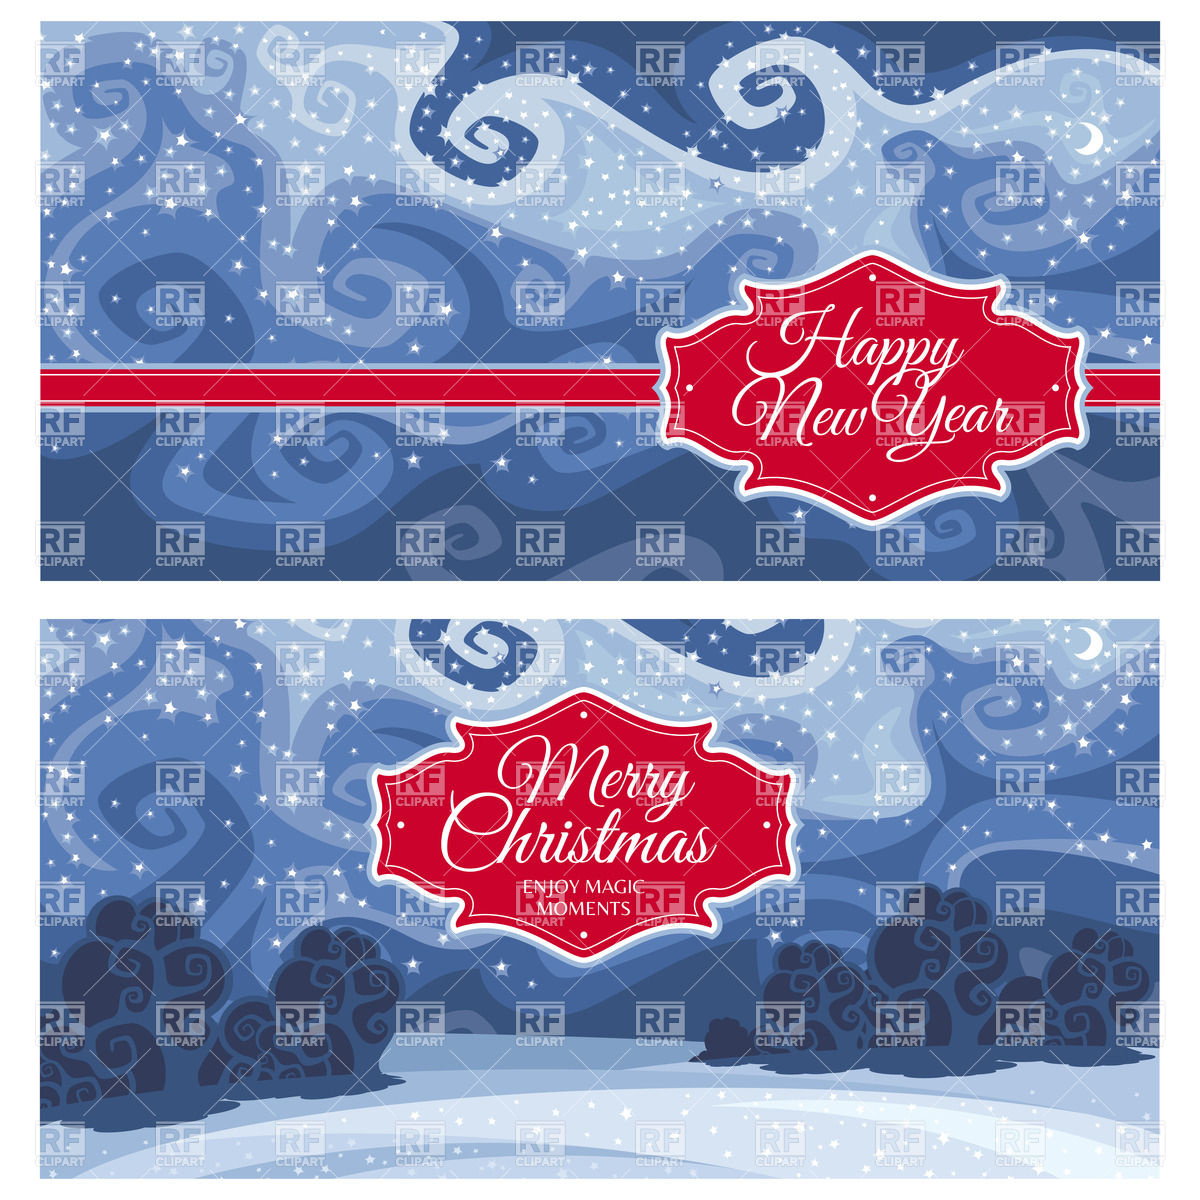 Christmas and New Year greeting cards with night winter landscape.